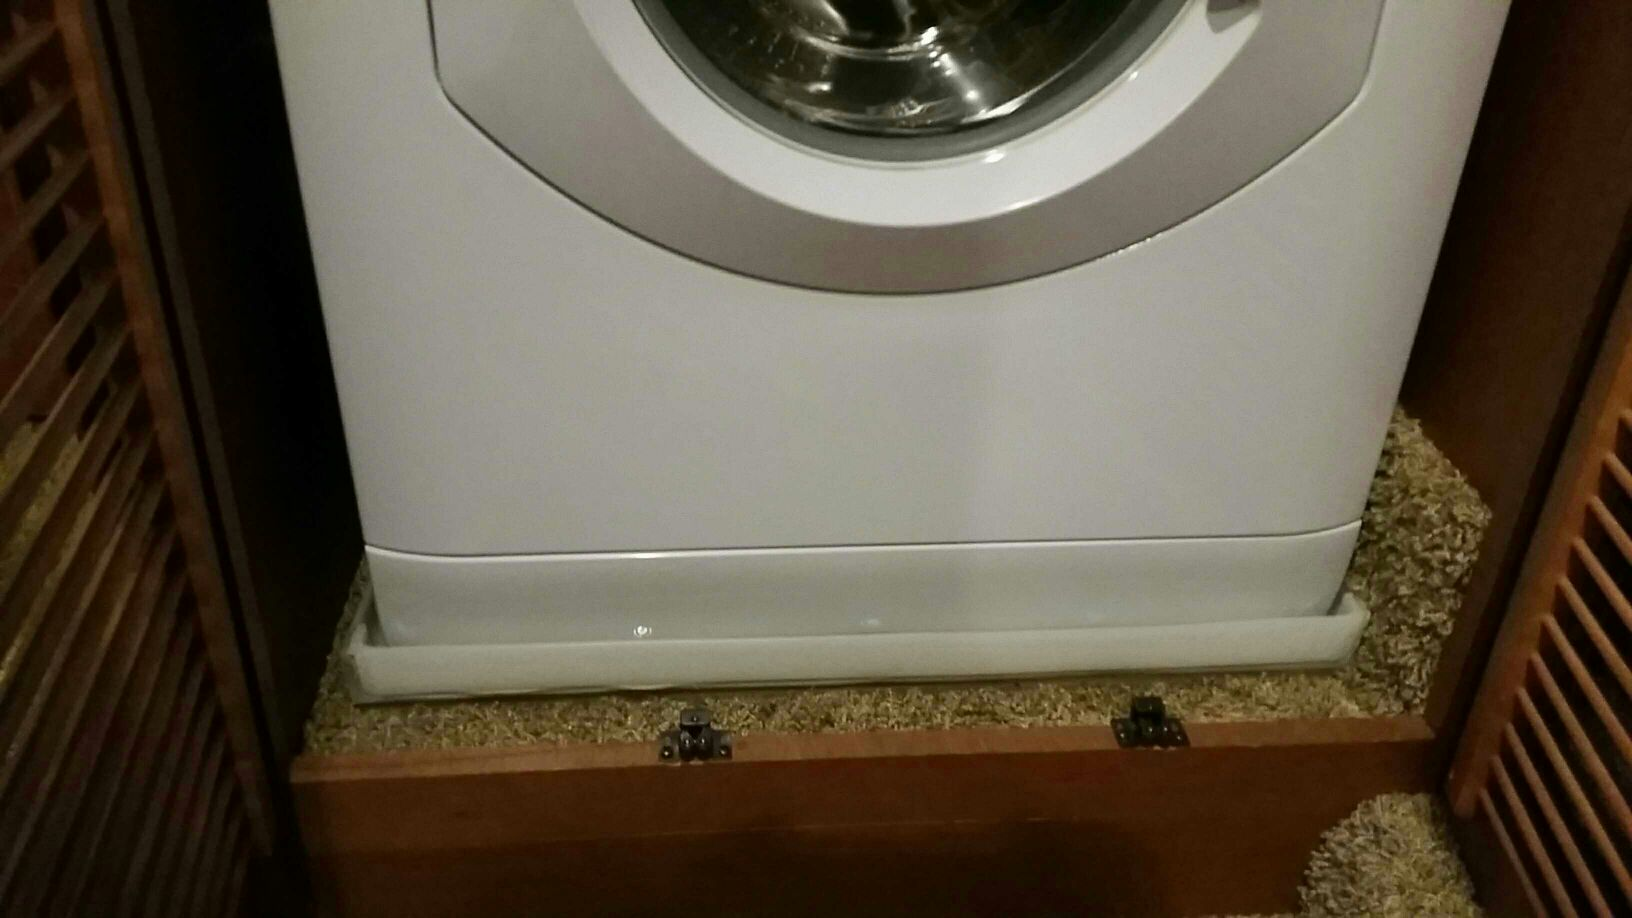 Drip Pan Not Included In The After Purchase Washer Installation